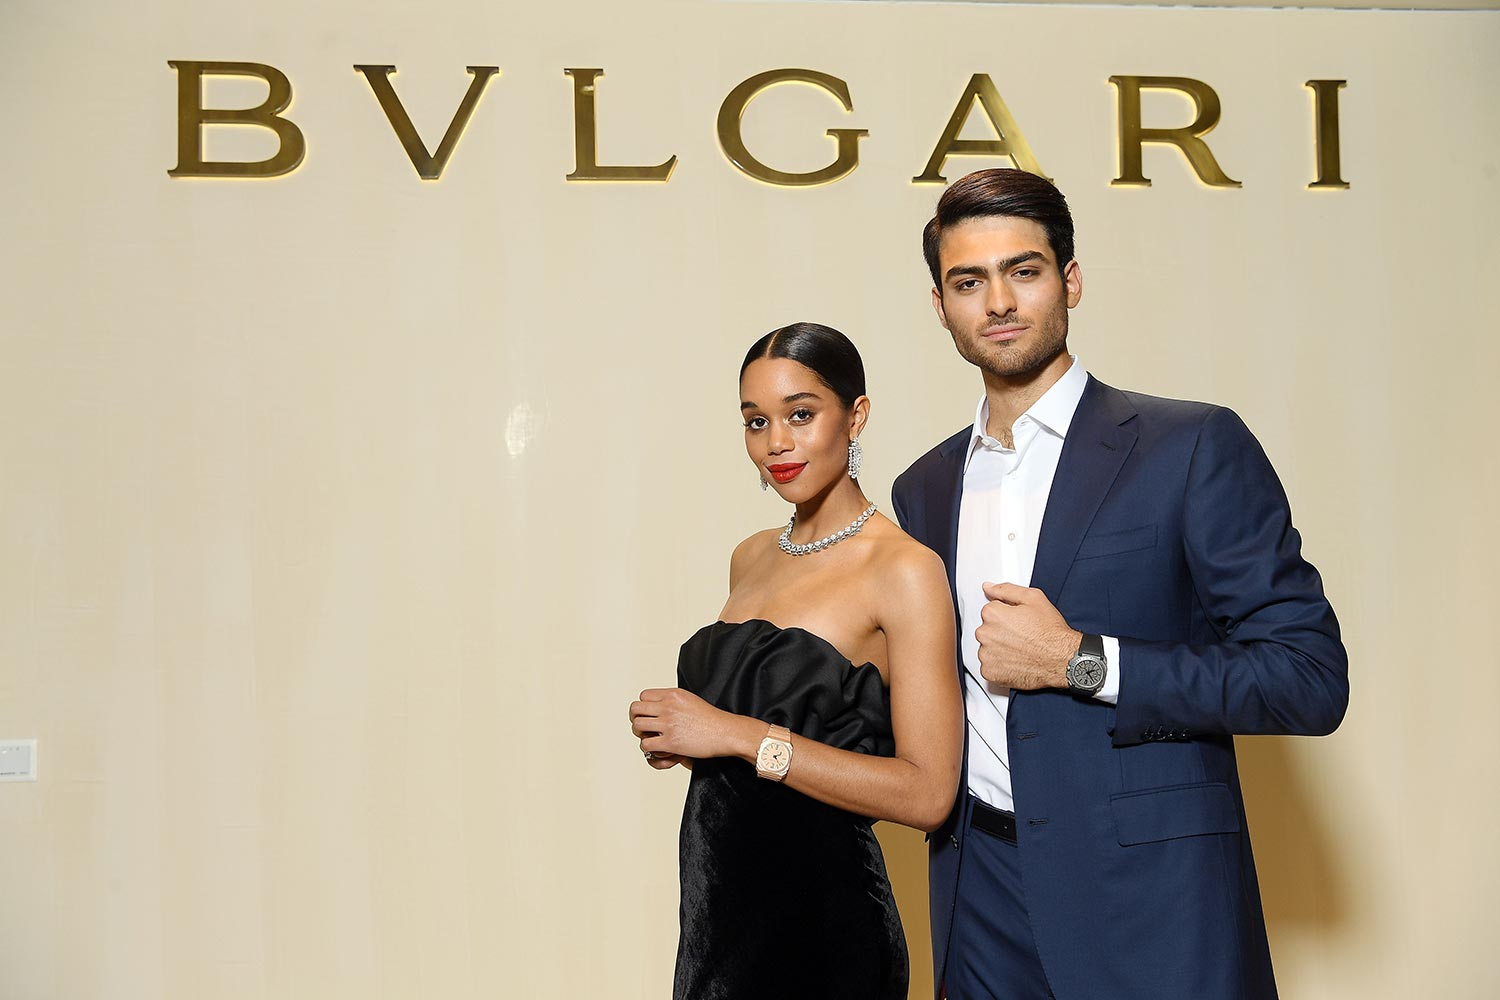 Bulgari Basel Press Party - Laura Harrier, Matteo Bocelli - Hair & makeup Massimo Serini